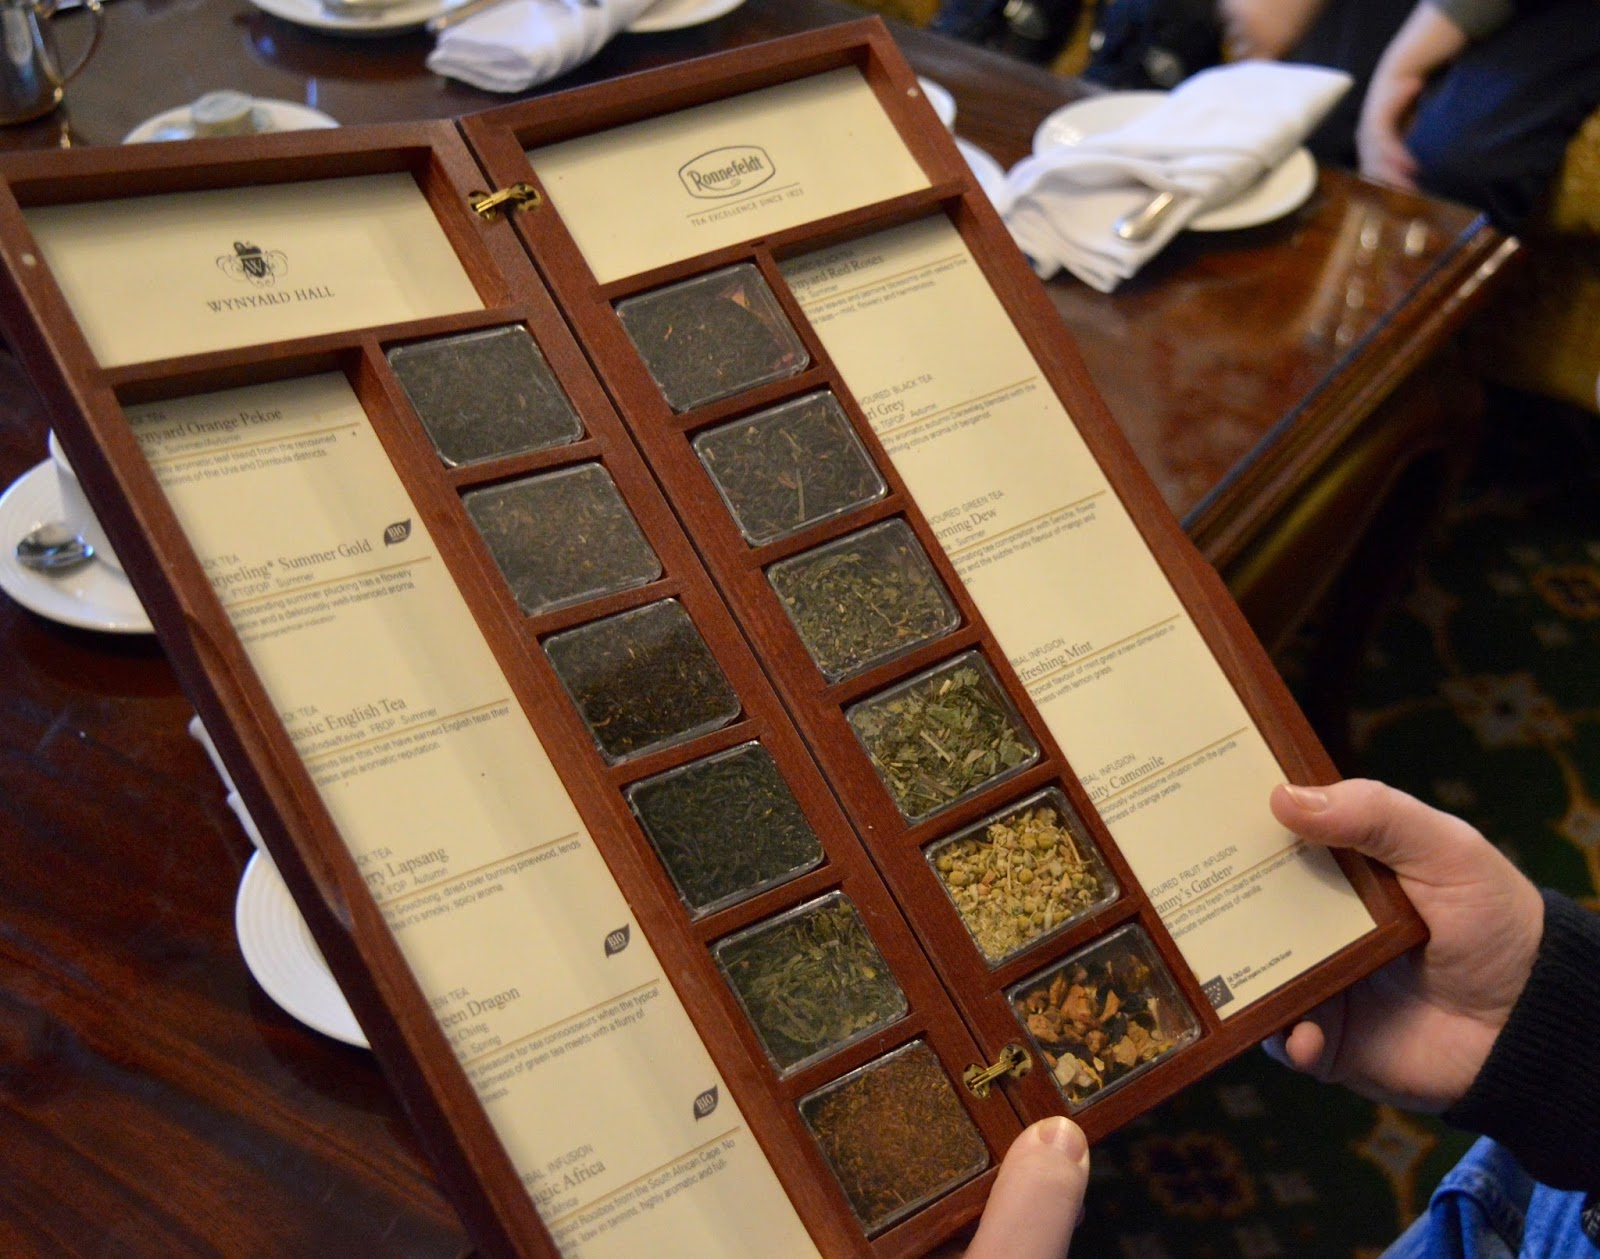 Afternoon tea at Wynyard Hall (with kids) - A Review - tea menu and selection